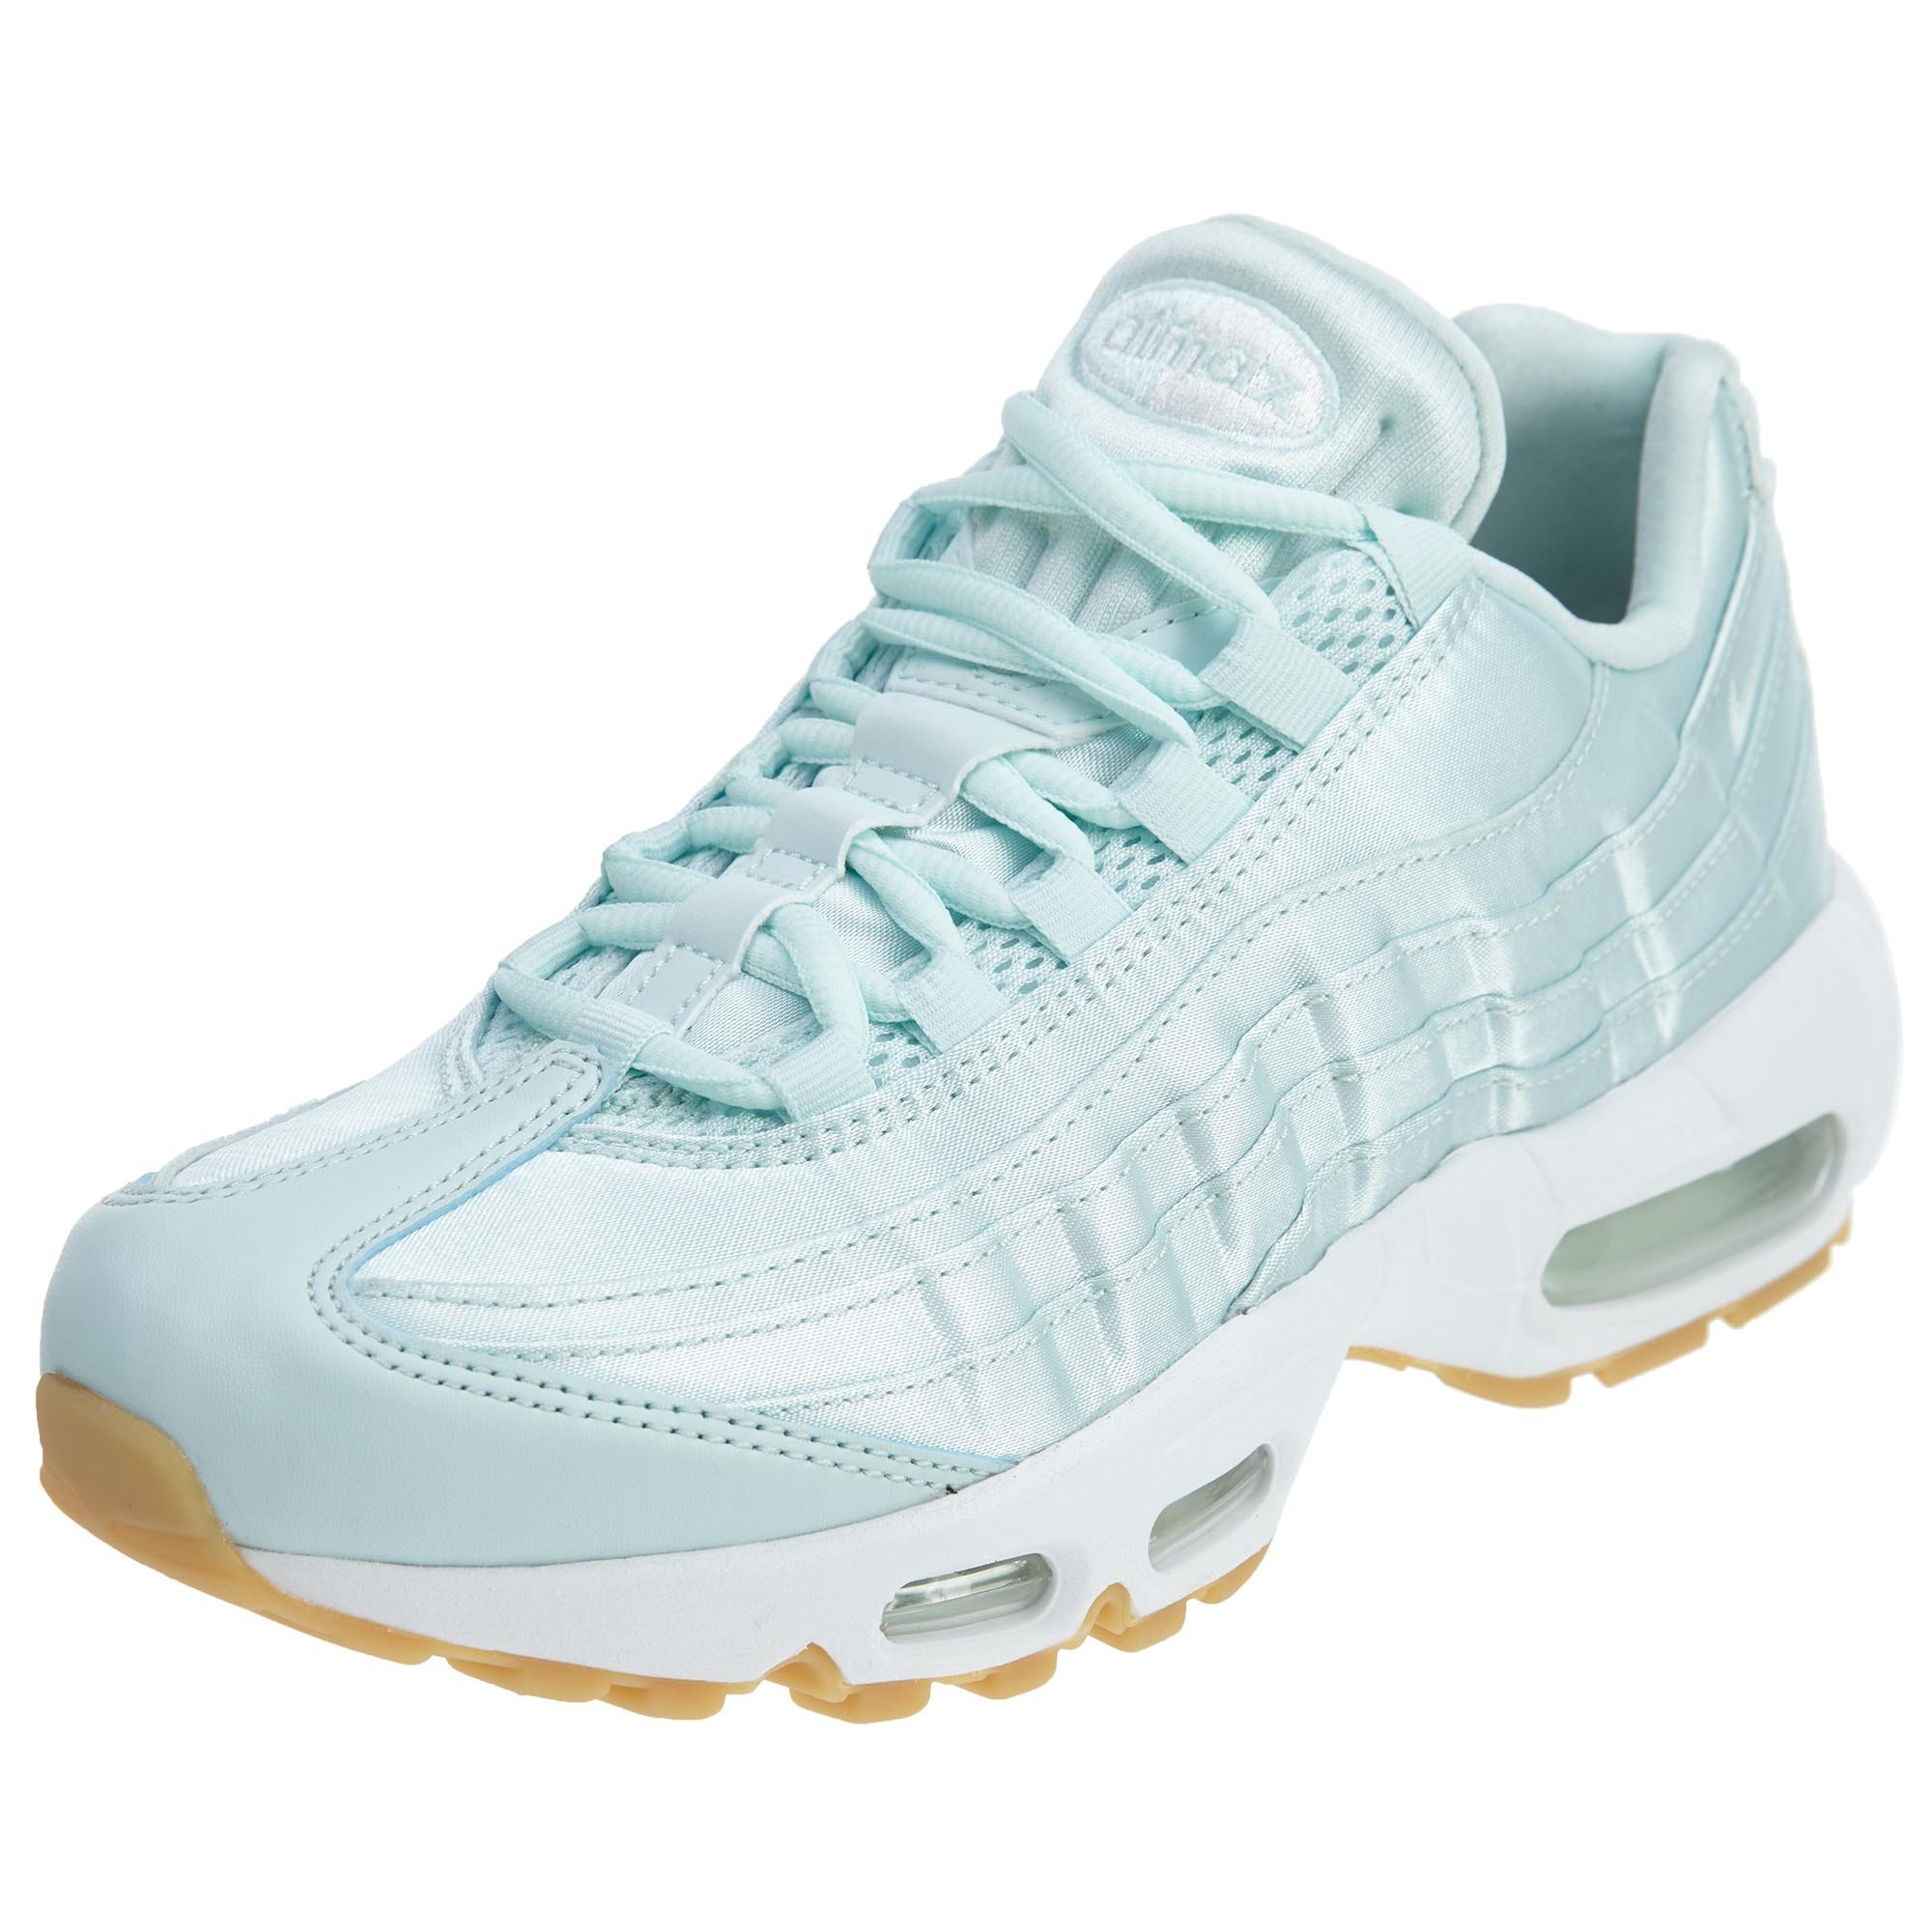 Nike Air Max 95 Wqs Womens Style: 919491-301 Size: 9